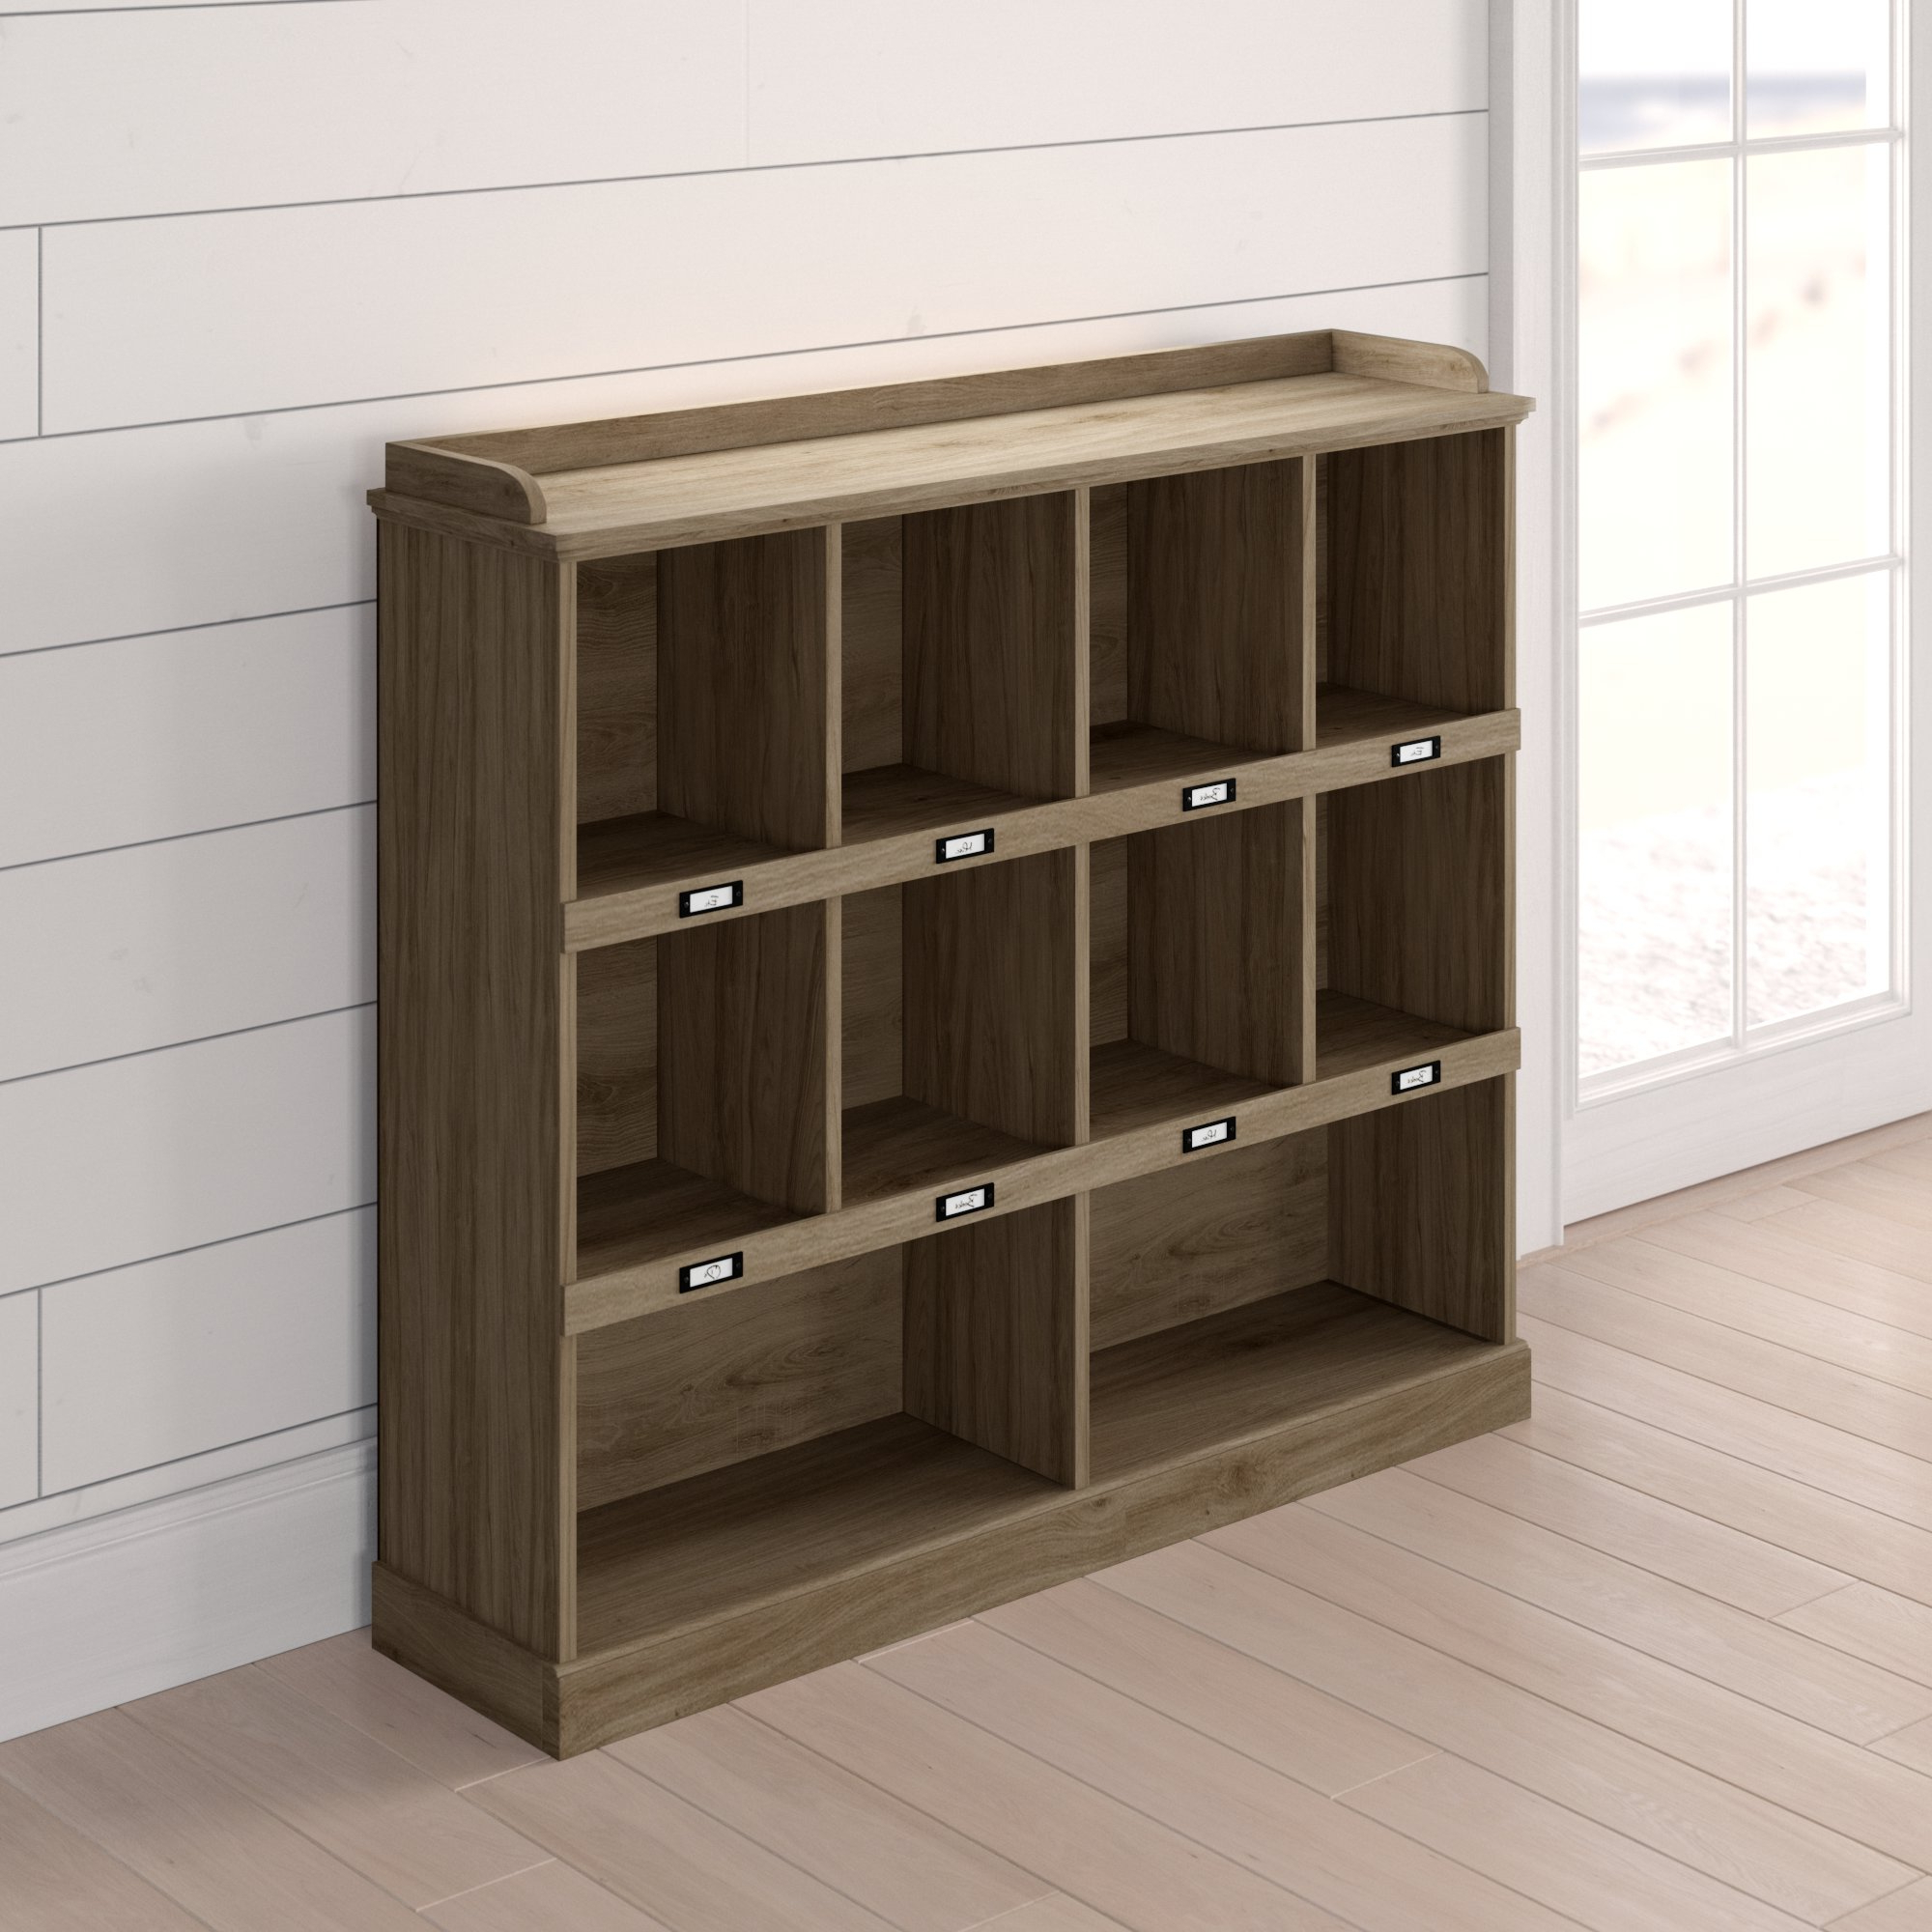 Recent Bookcase With Baskets You'll Love In (View 4 of 20)